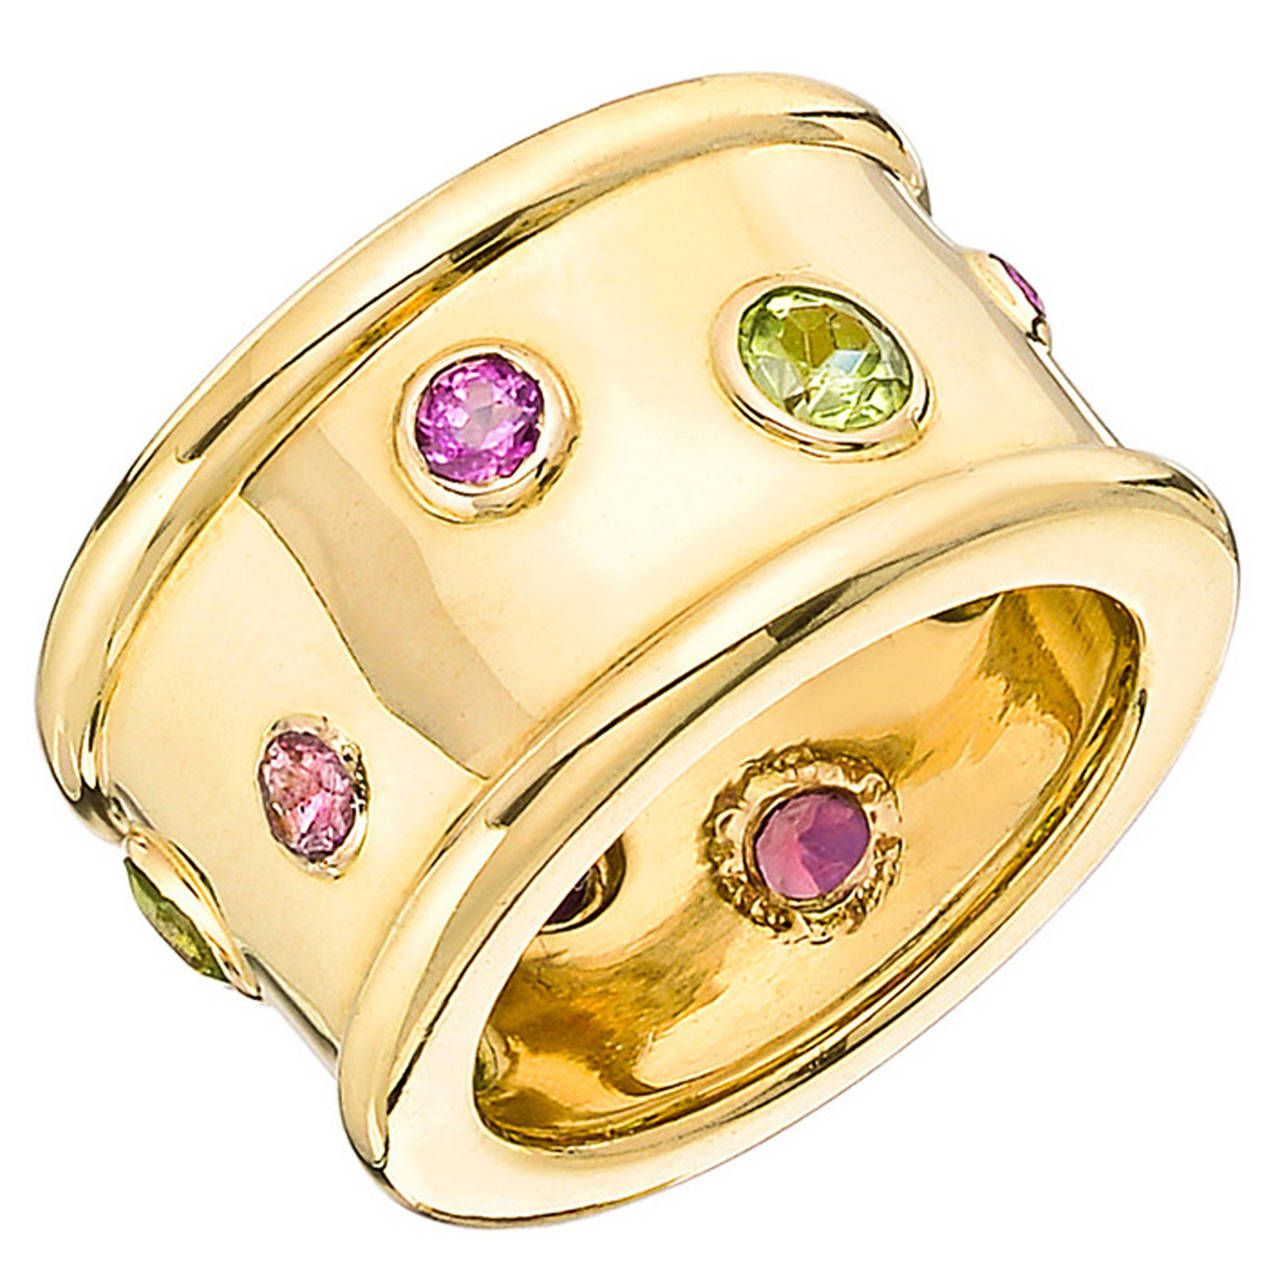 Chanel Peridot Pink Tourmaline Gold Wide Band Ring Wide band